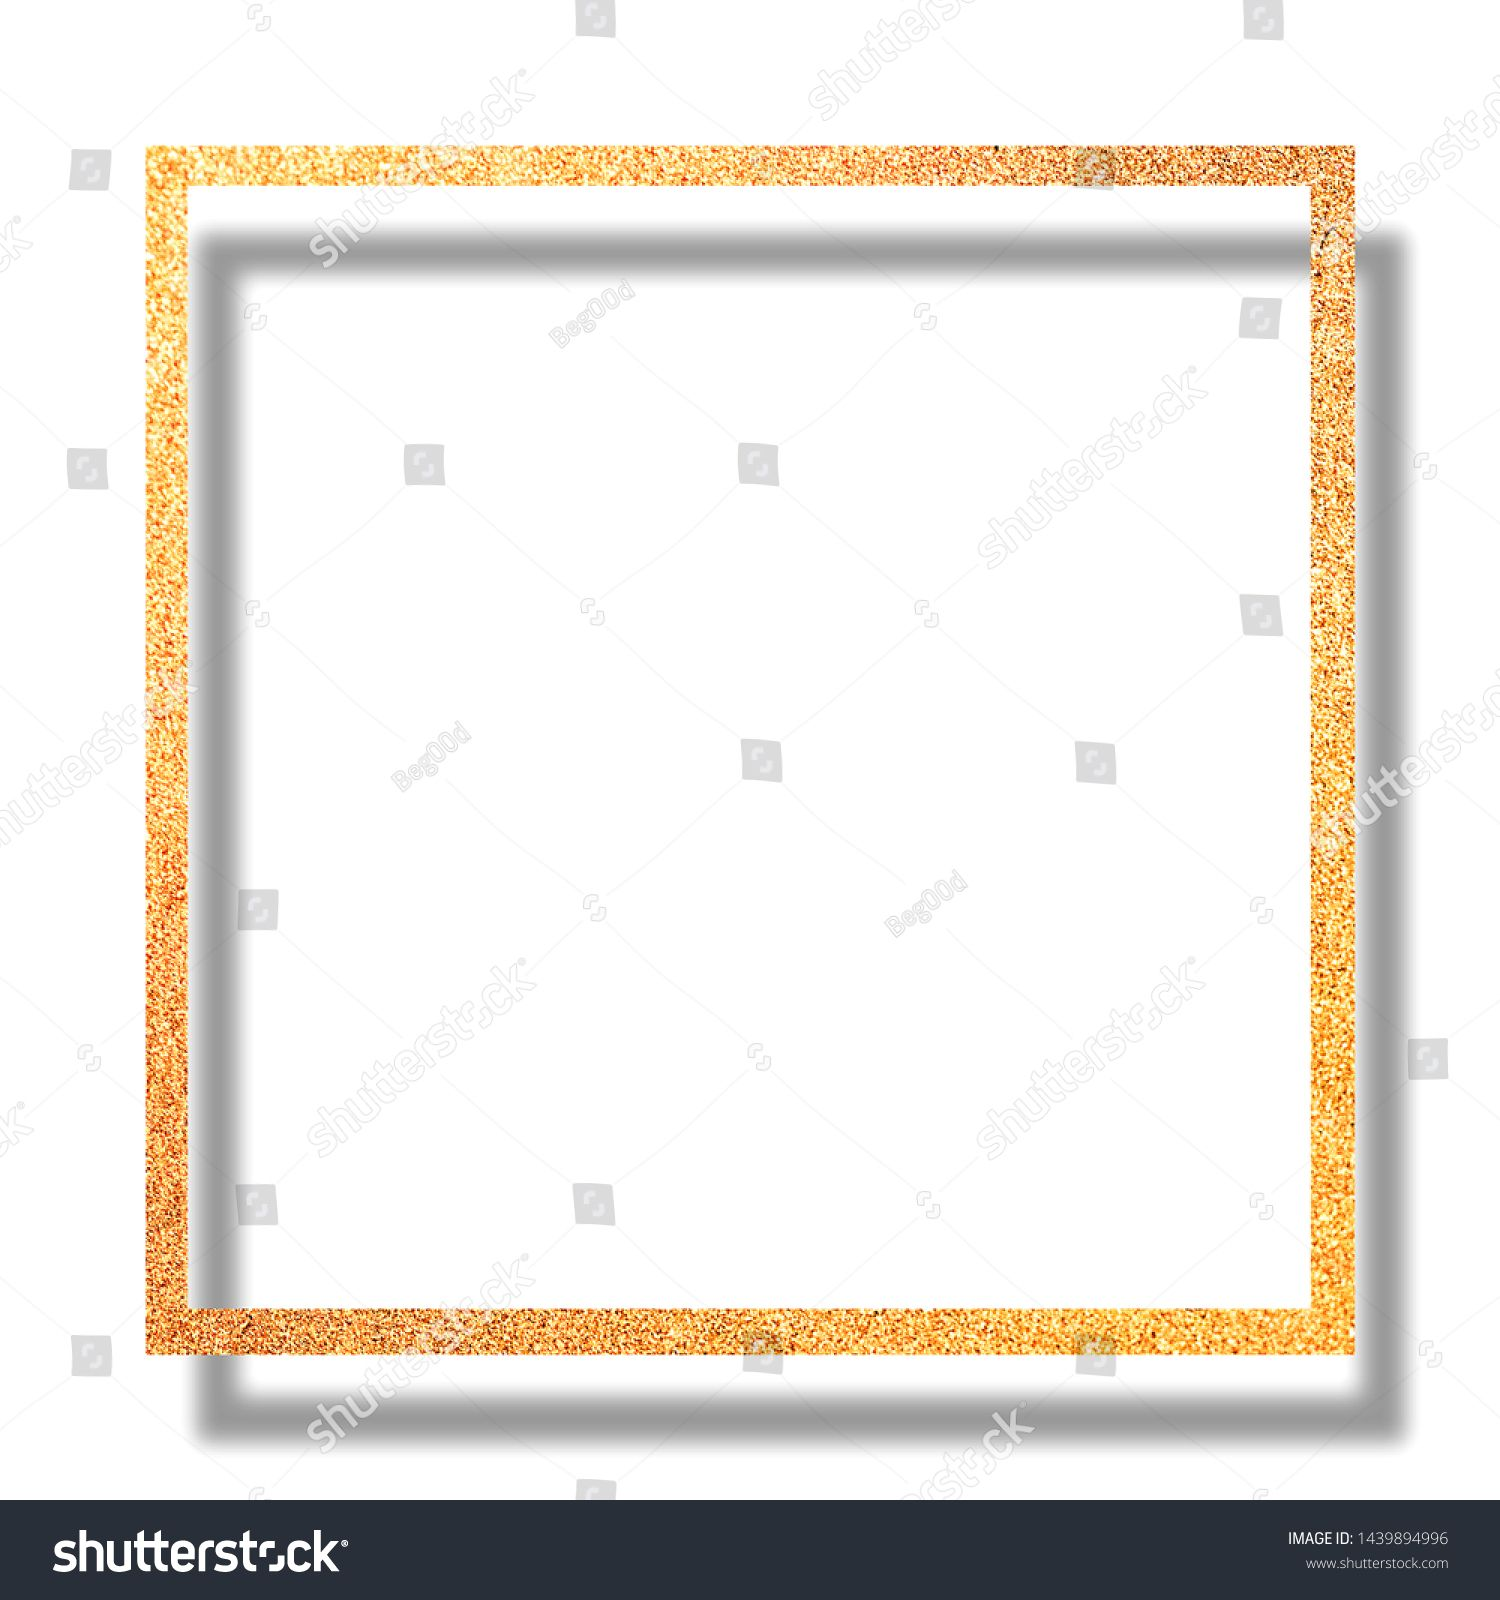 Gold Glitter Frame For Card Or Photo Template Christmas And New Year And Holiday Background Ad Sponsored Card Photo Frame Glitter Frame Frame Card Frame